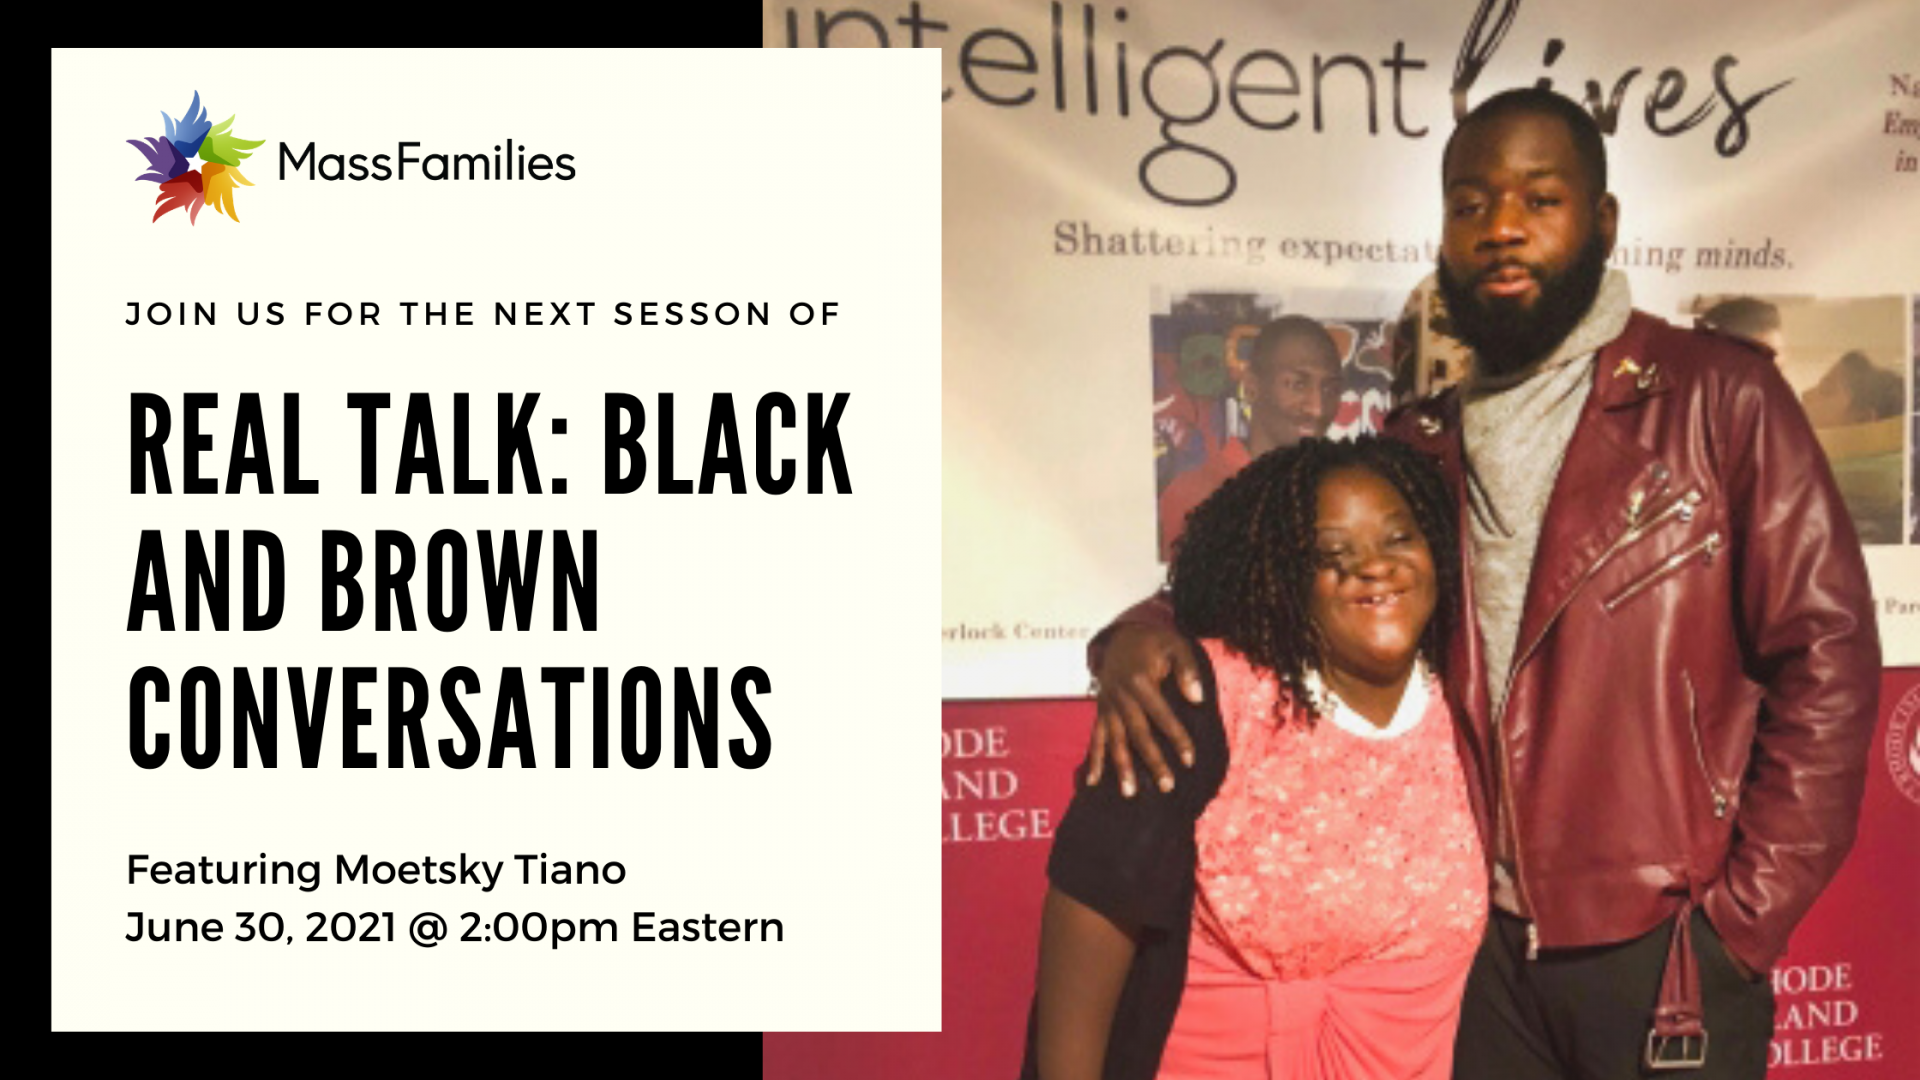 Real Talk Black and Brown Conversations Moetsky Tiano